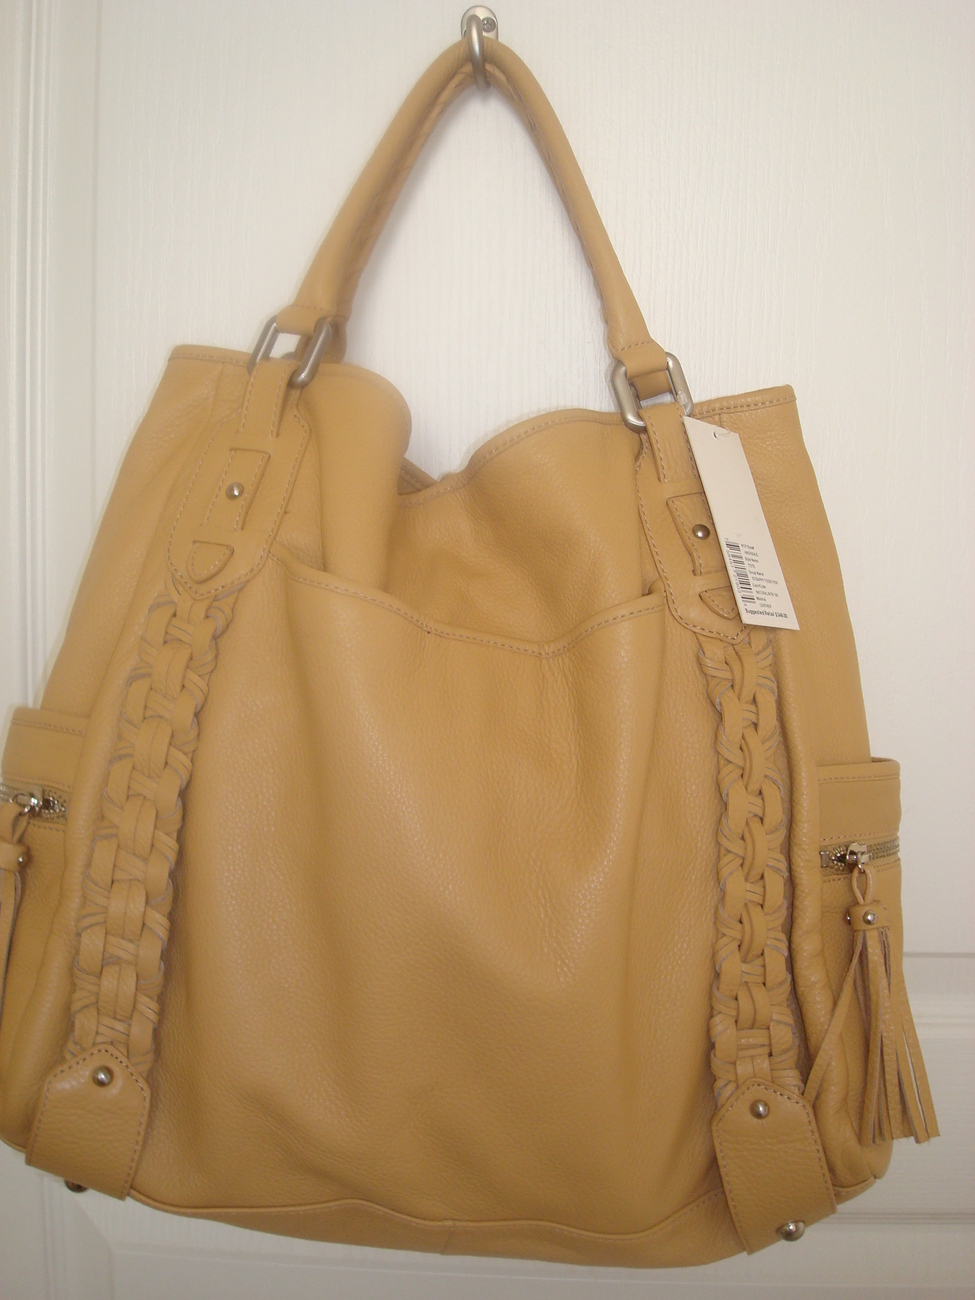 KENNETH COLE 'STRAPPY TOGETHER' TOTE HANDBAG